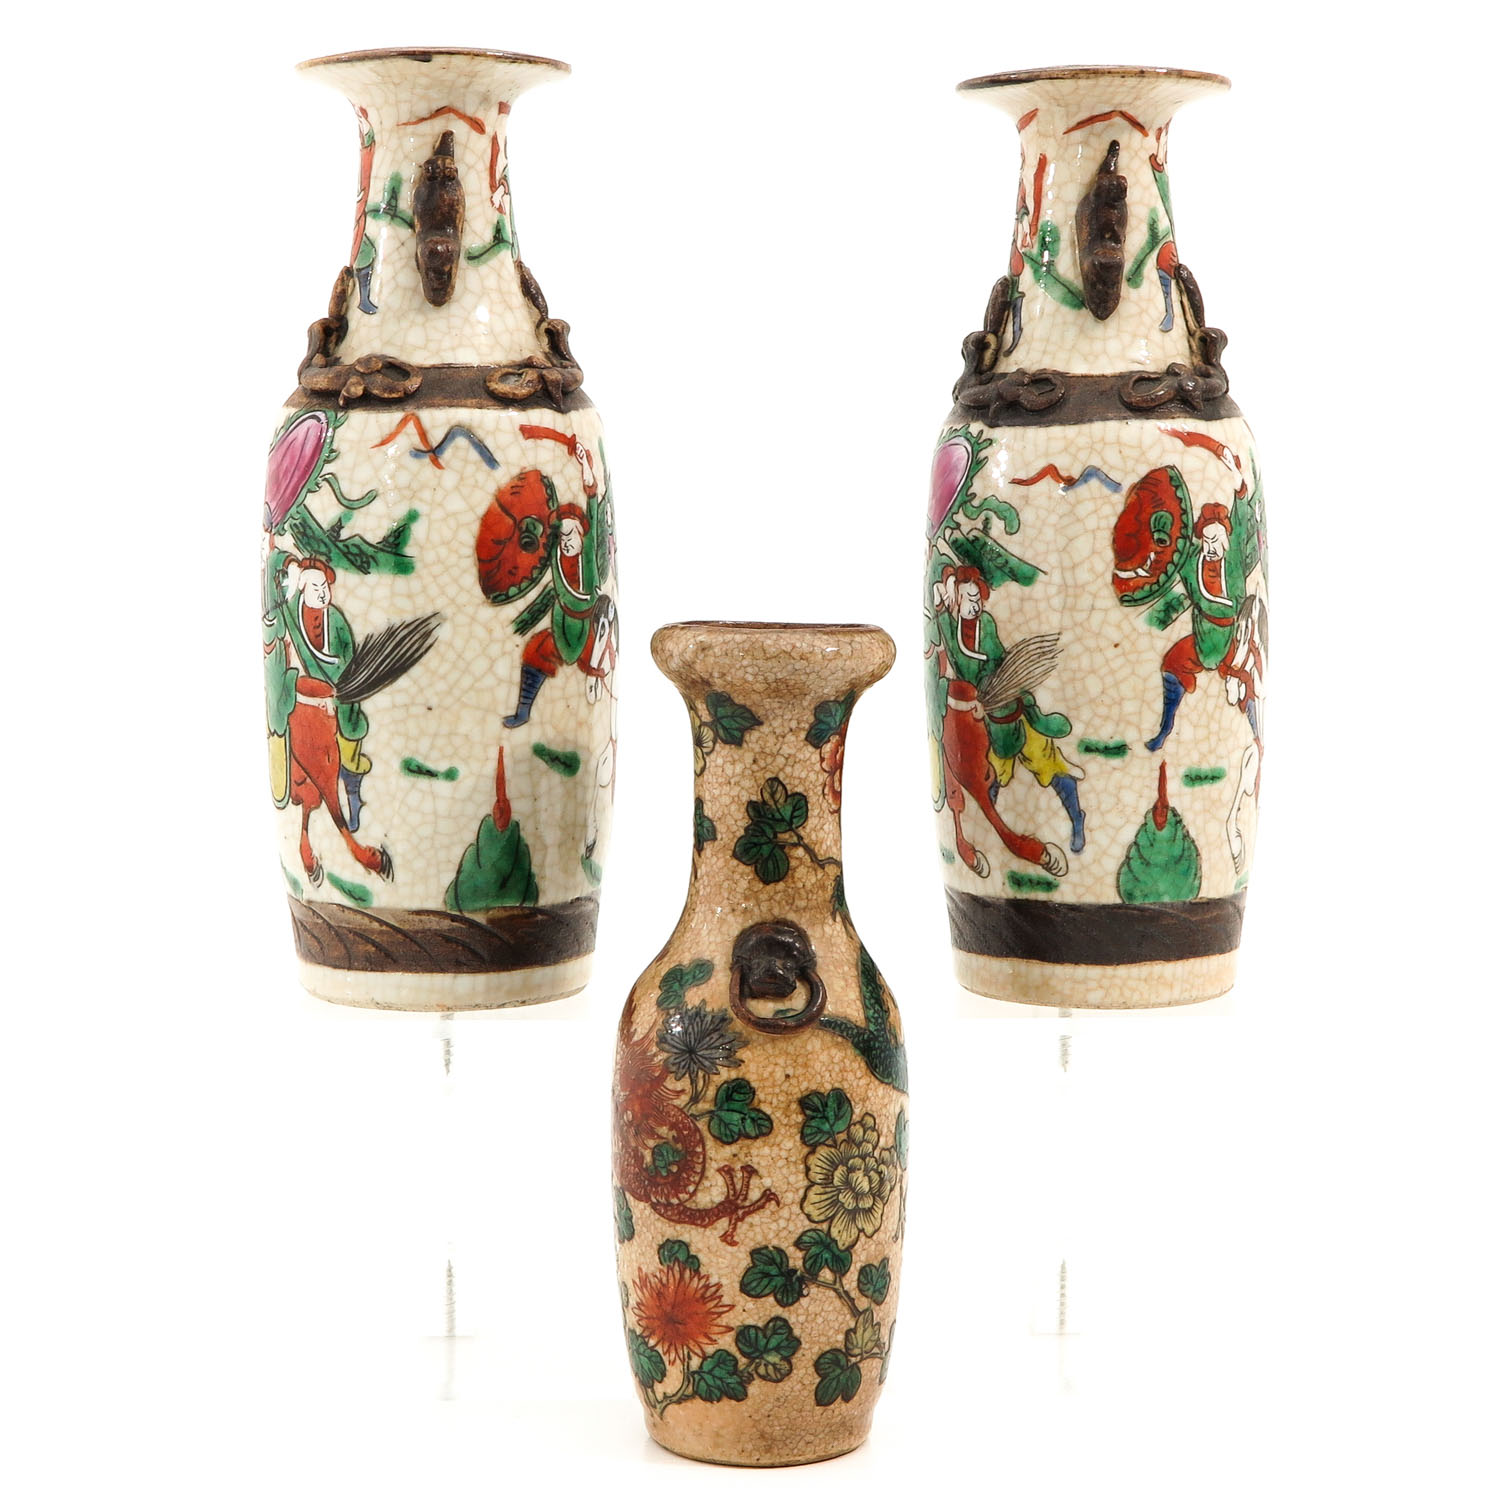 A Collection of 3 Nanking Vases - Image 2 of 9